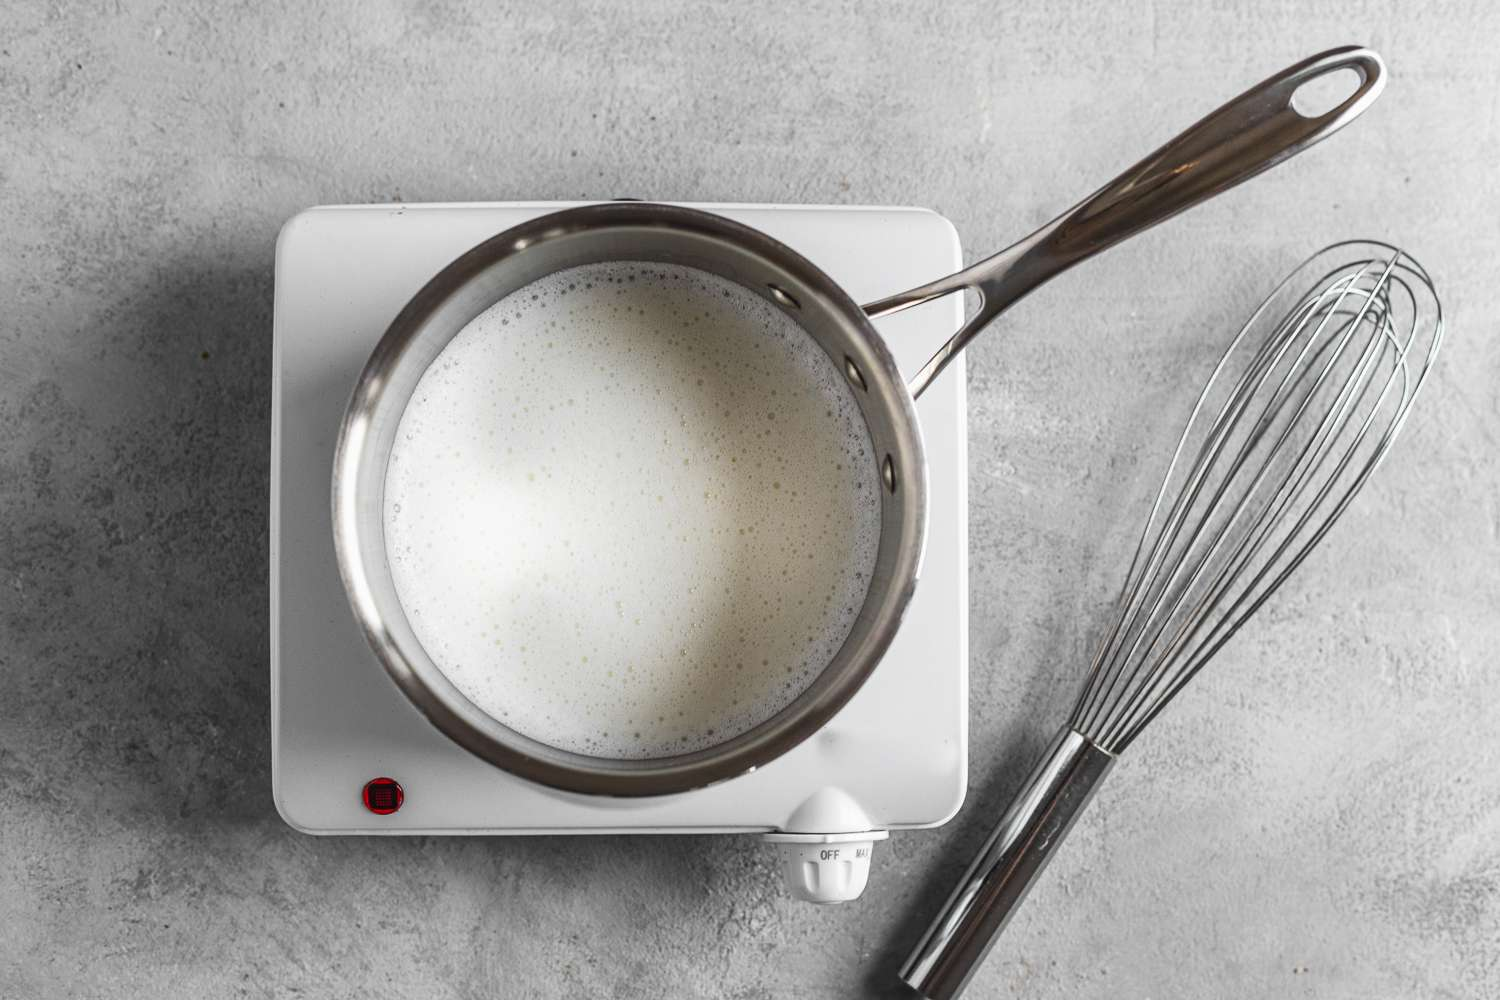 frothed milk in a saucepan